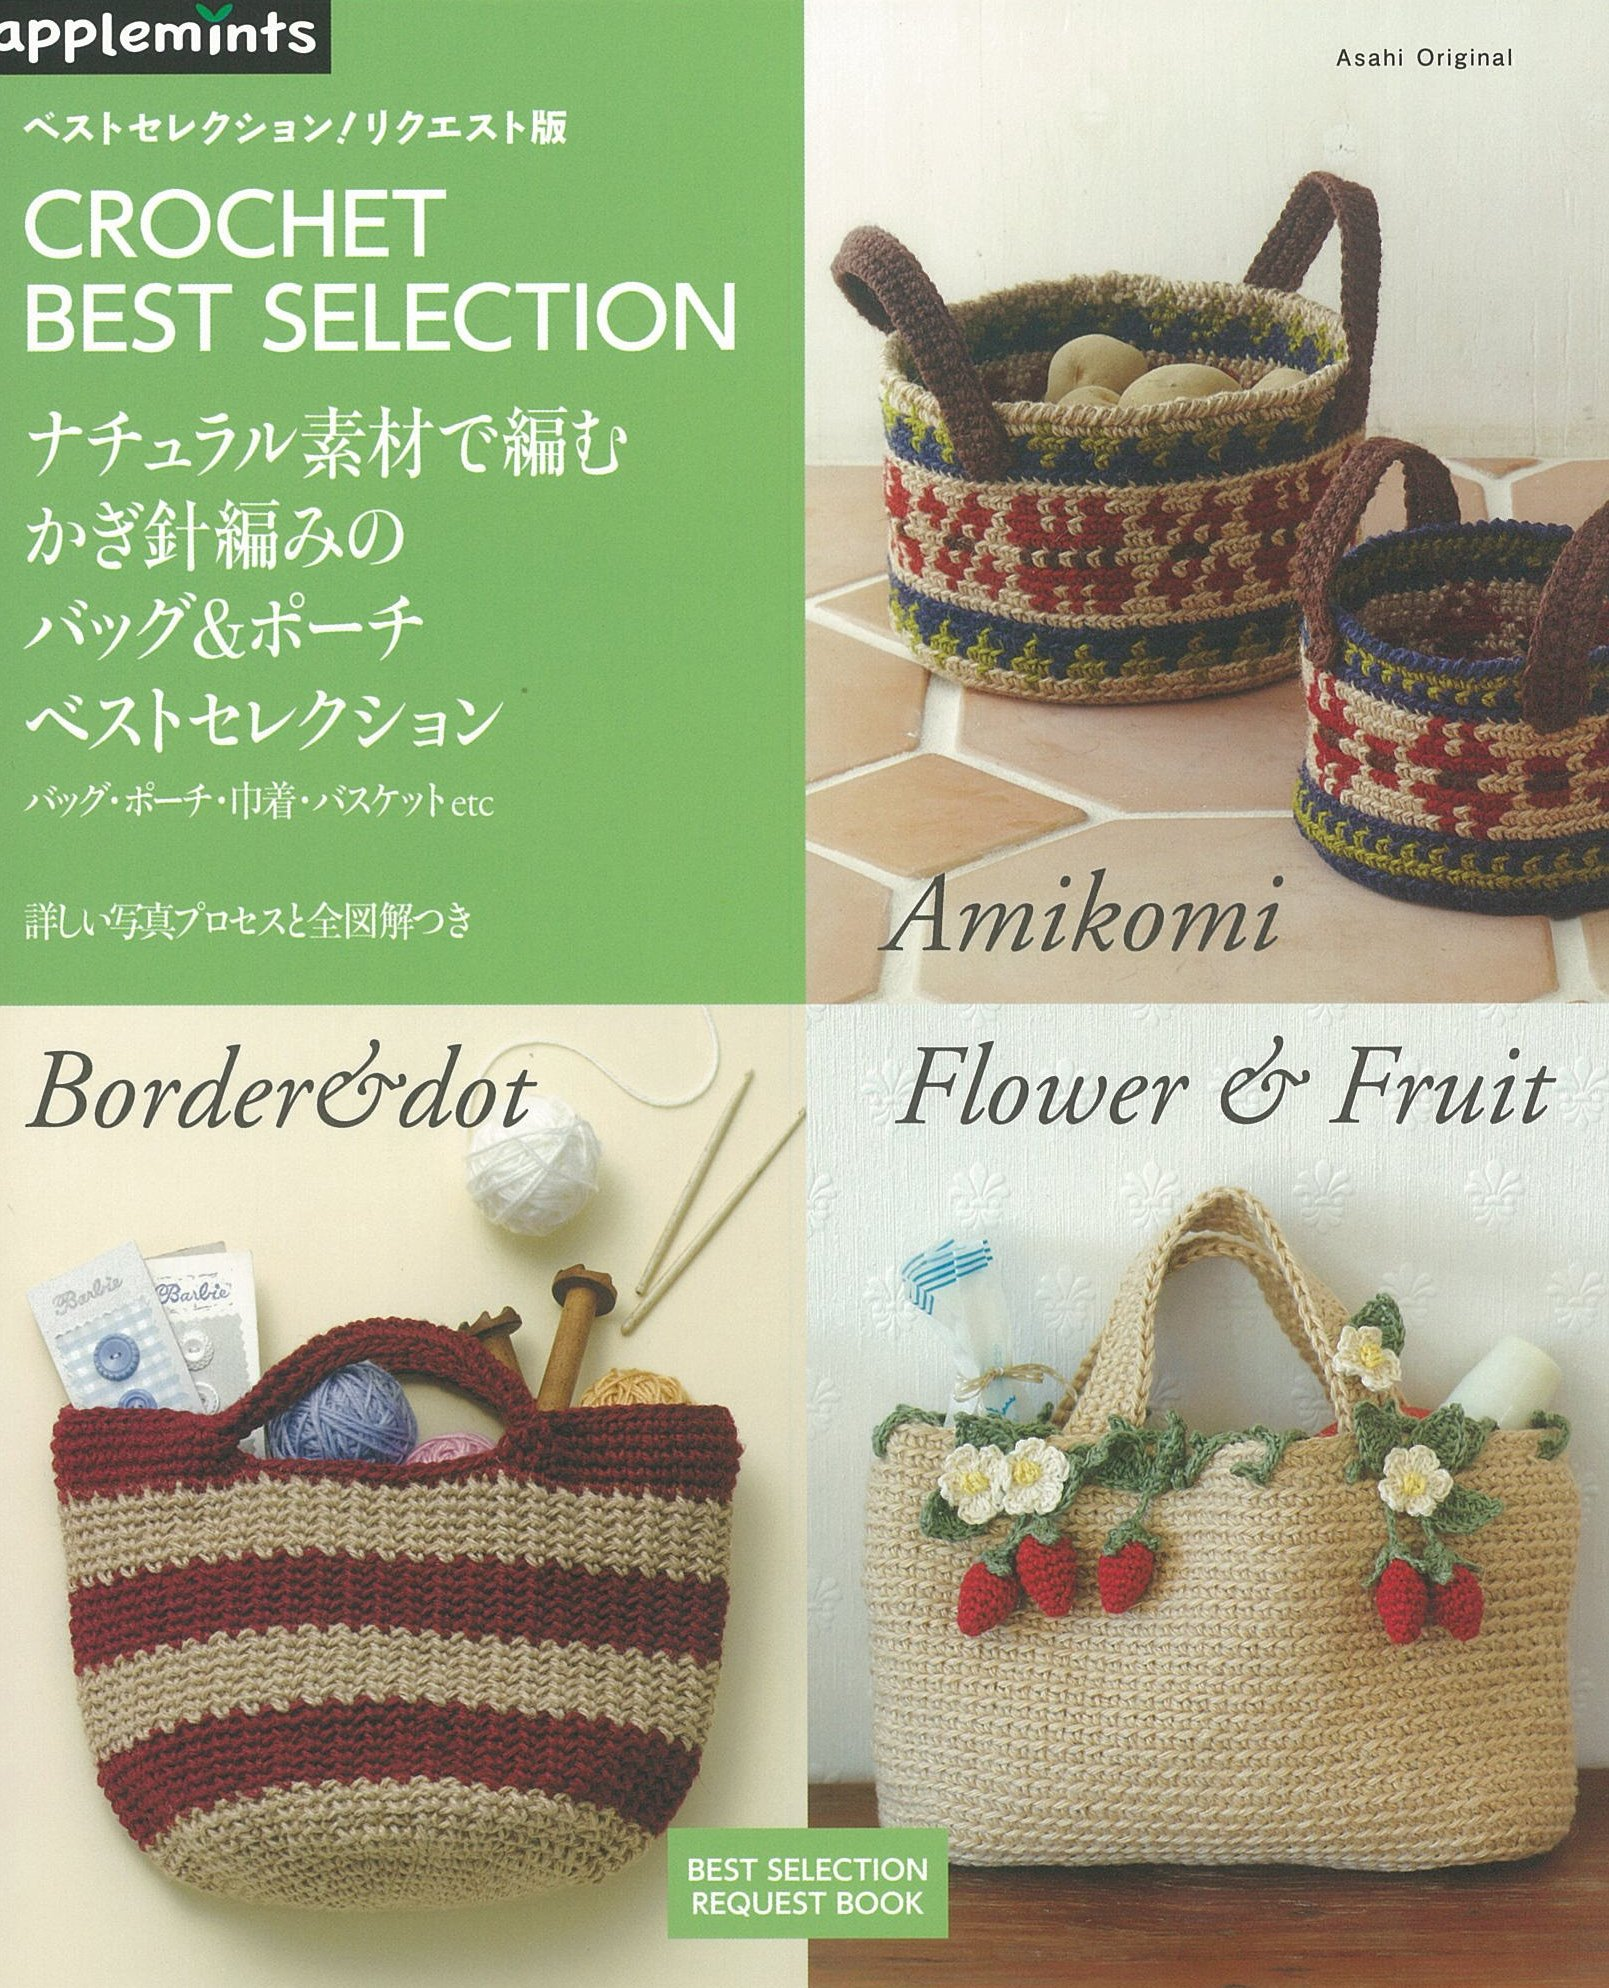 Crochet  Best Selection. Bags & Pouches of Natural Material